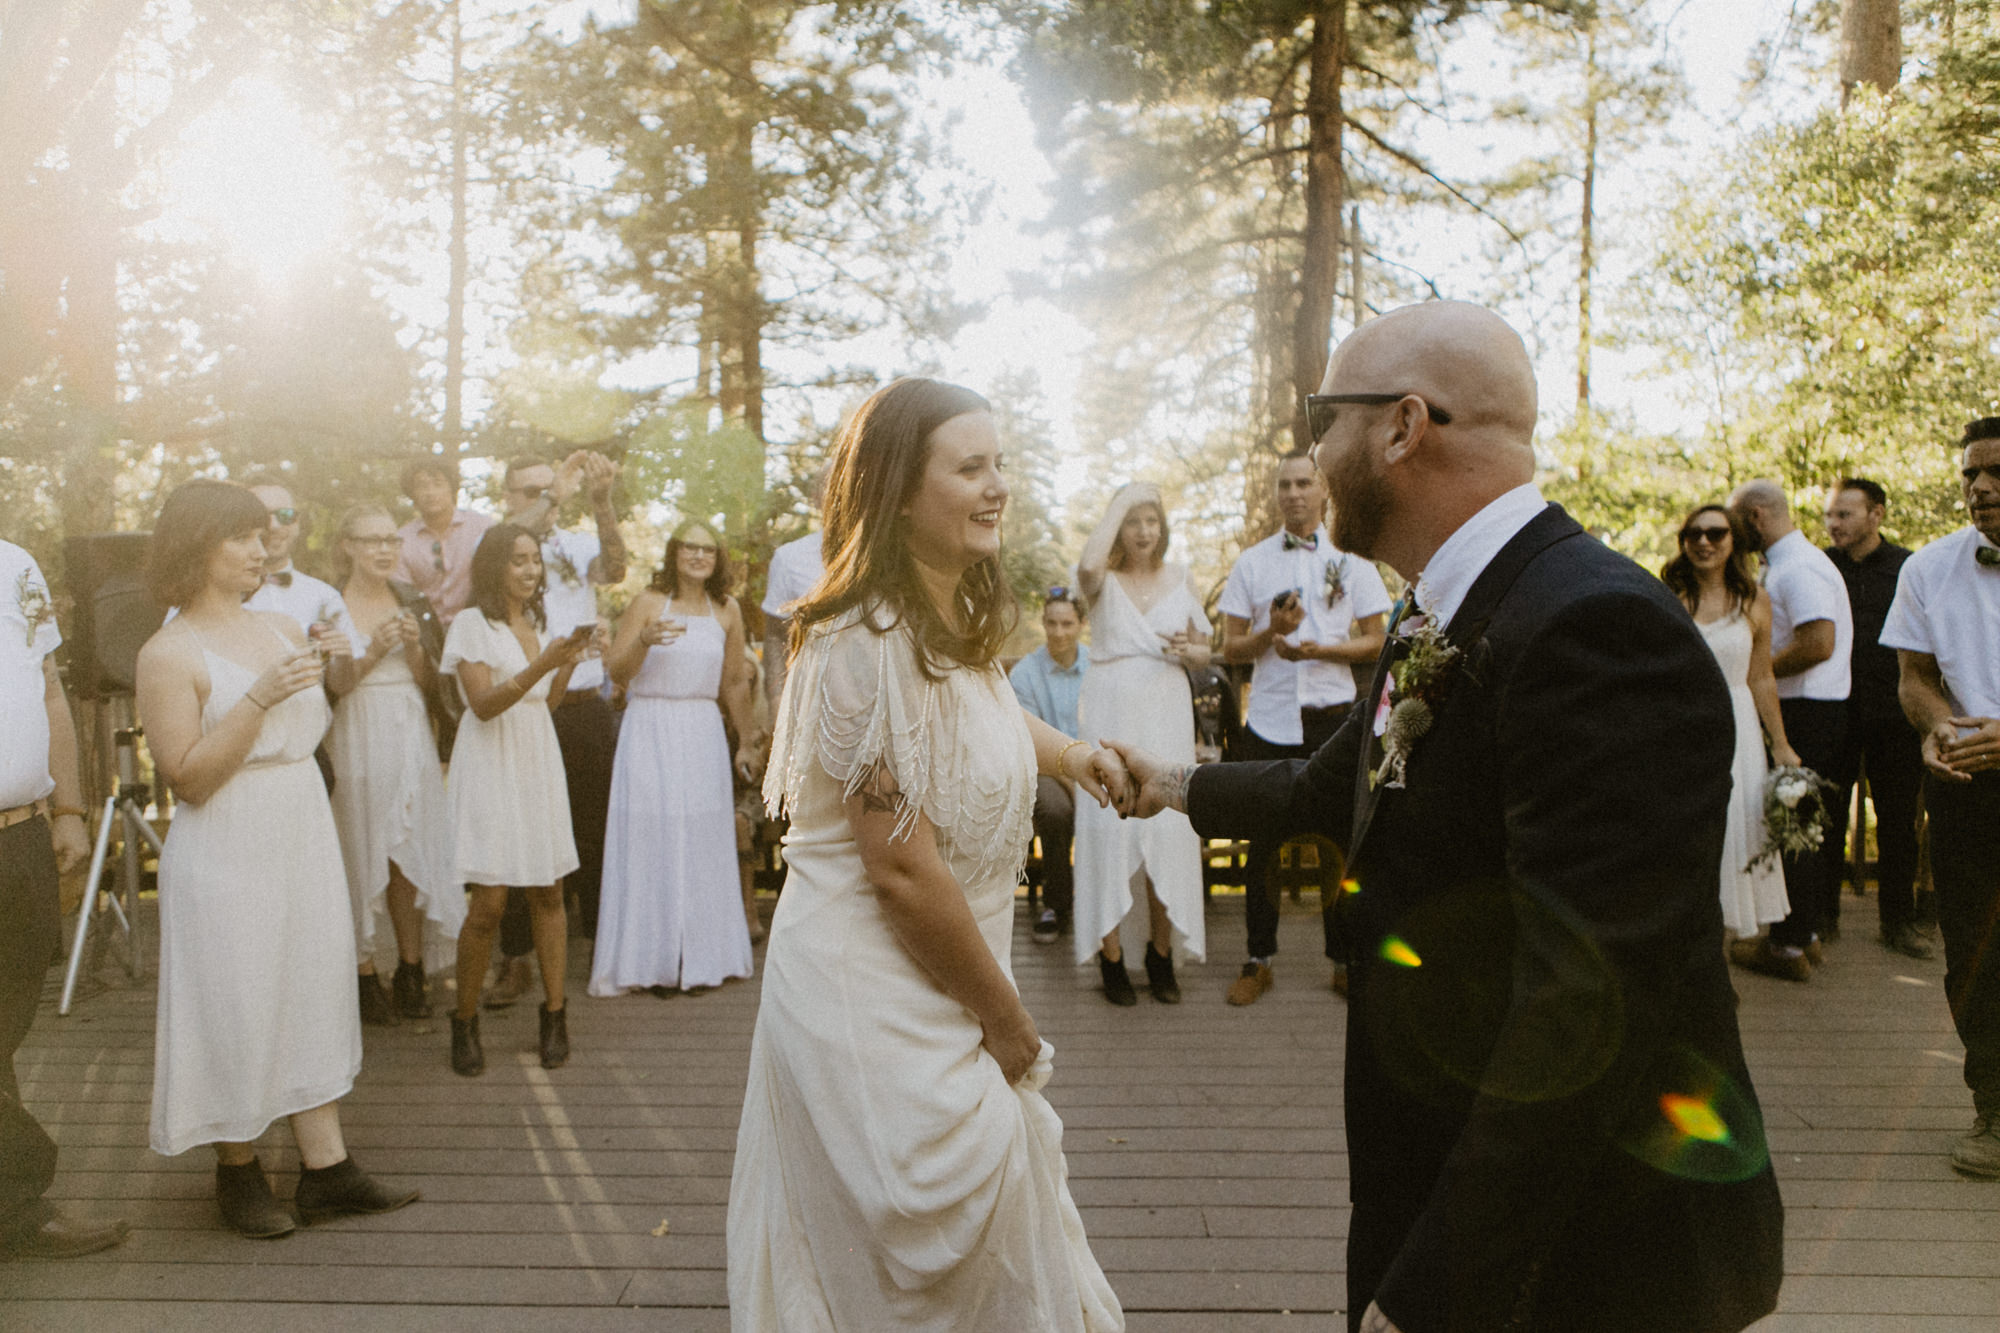 YMCA camp round meadow wedding -106.jpg